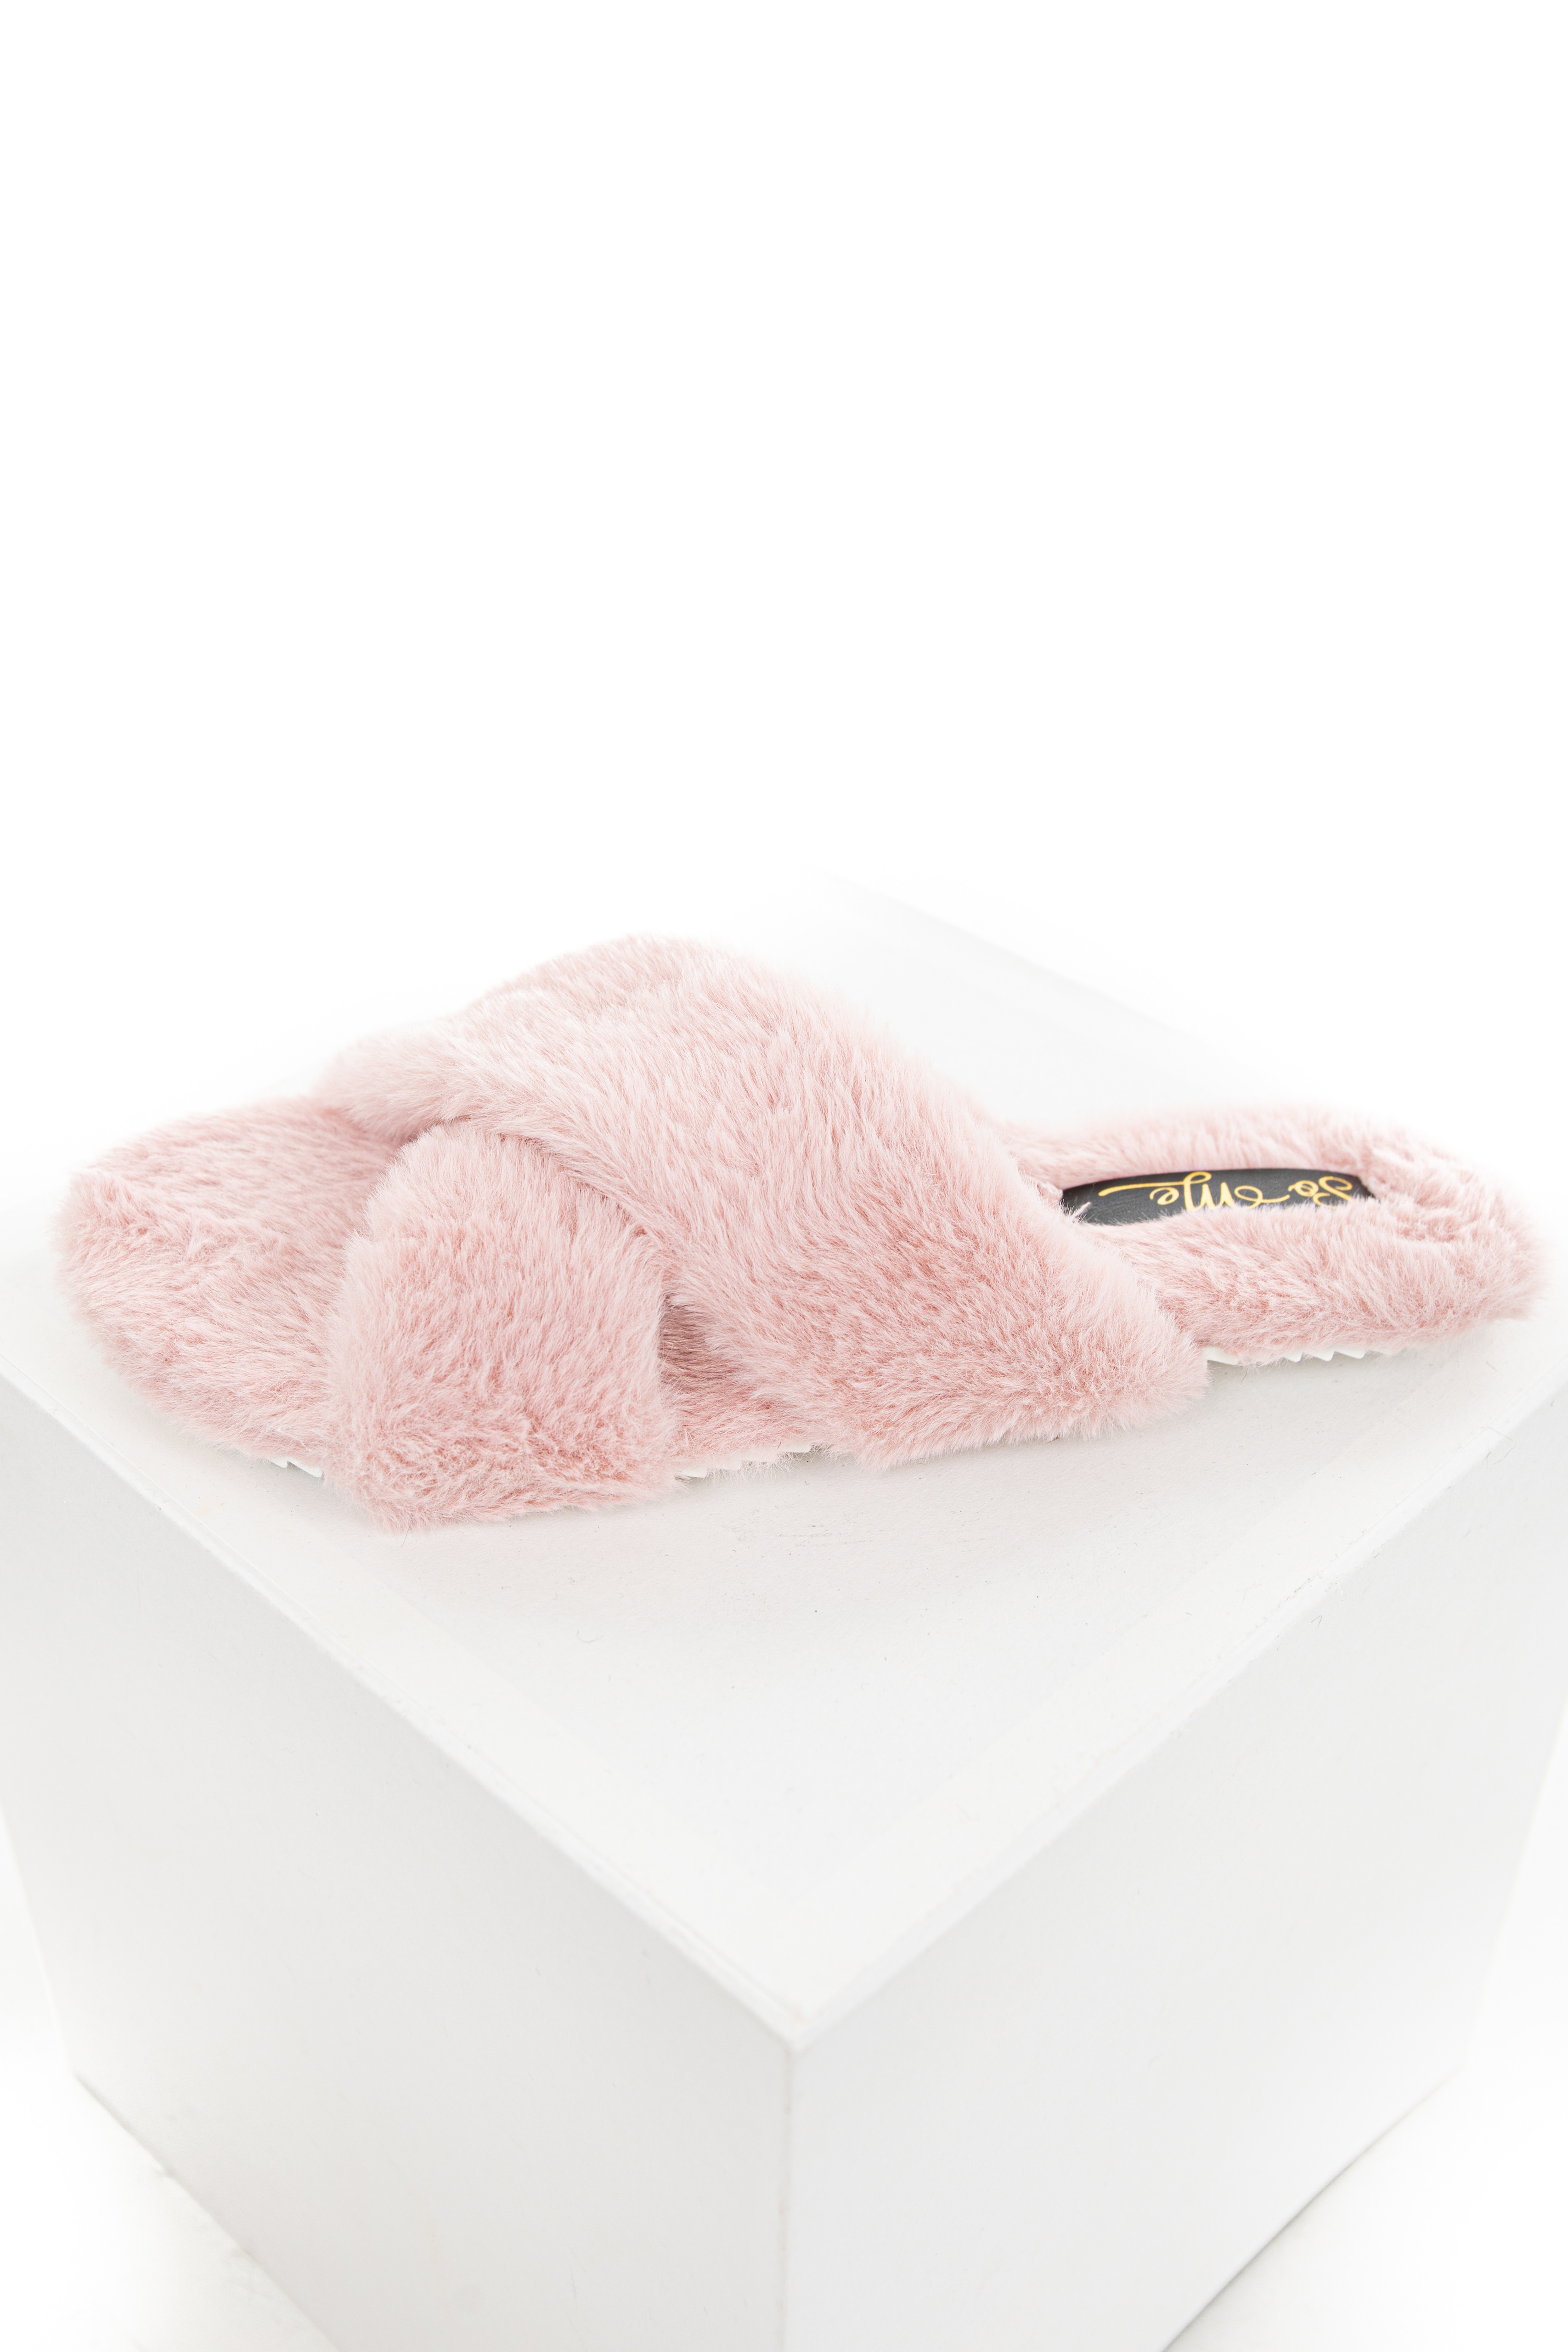 Dusty Pink Fuzzy Open Toed Slippers with Criss Cross Tops